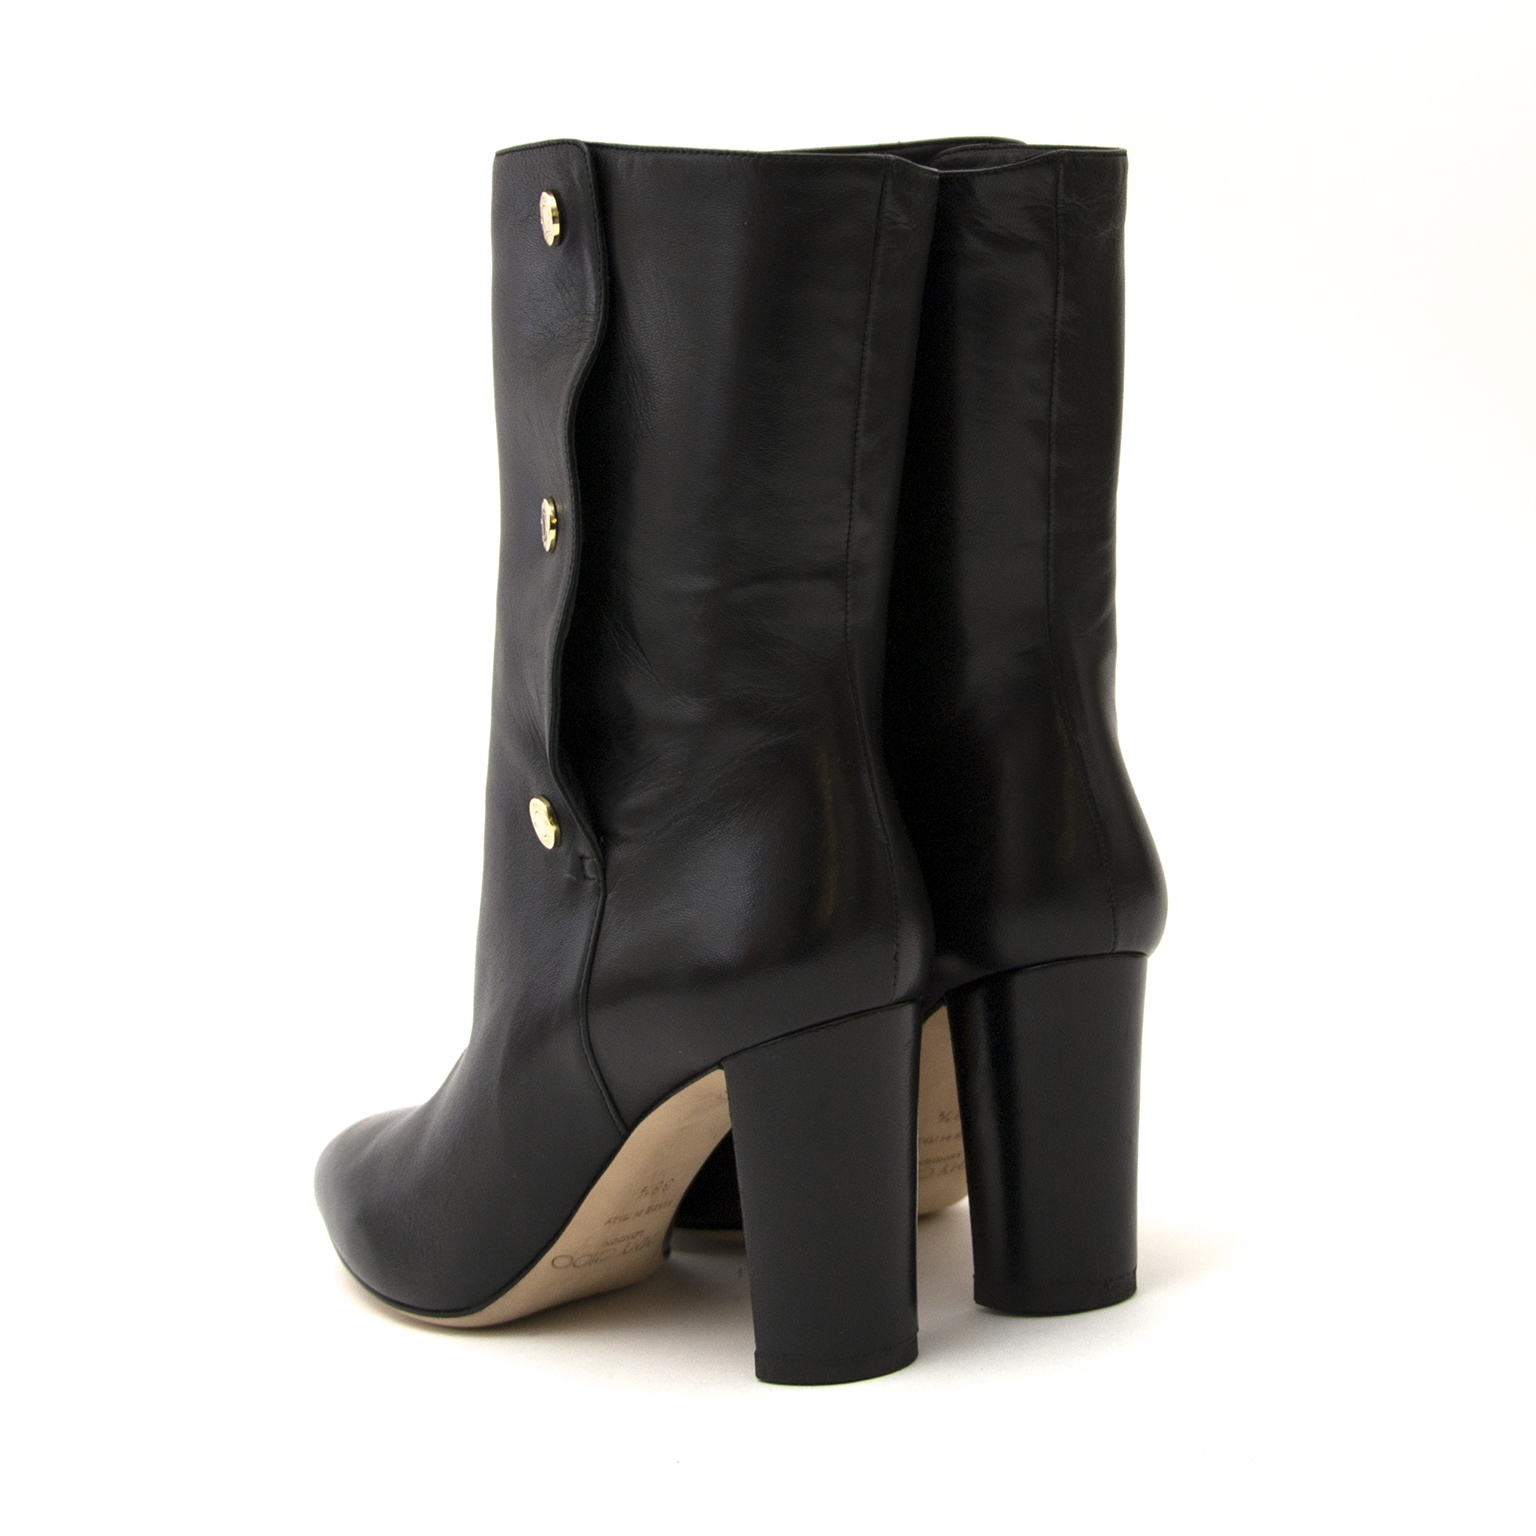 0f7fbb7faa9d ... jimmy choo black dayno boots now for sale at labellov vintage fashion  webshop belgium